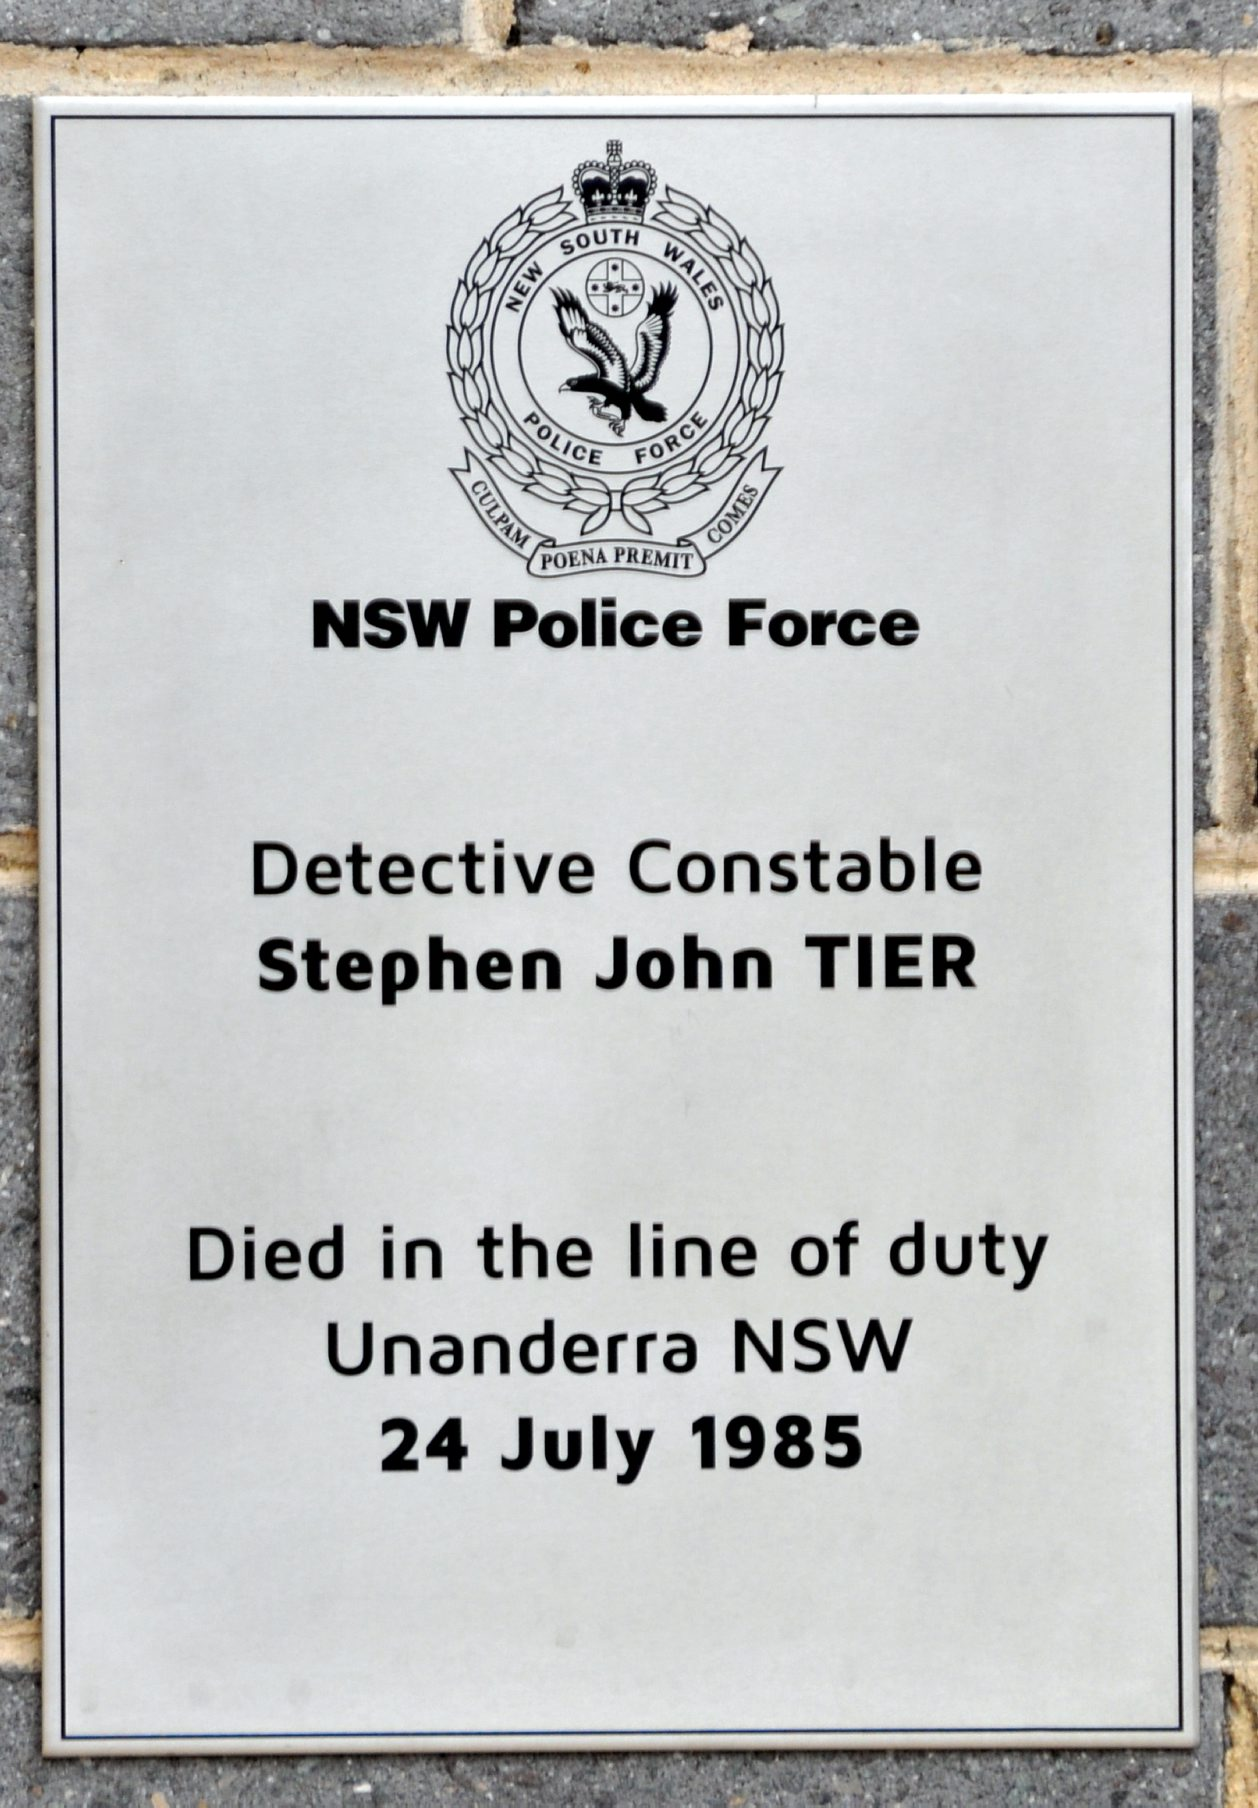 NSW Police Force Detective Constable Stephen John TIER Died in the line of duty. Unanderra, NSW 24 July 1985